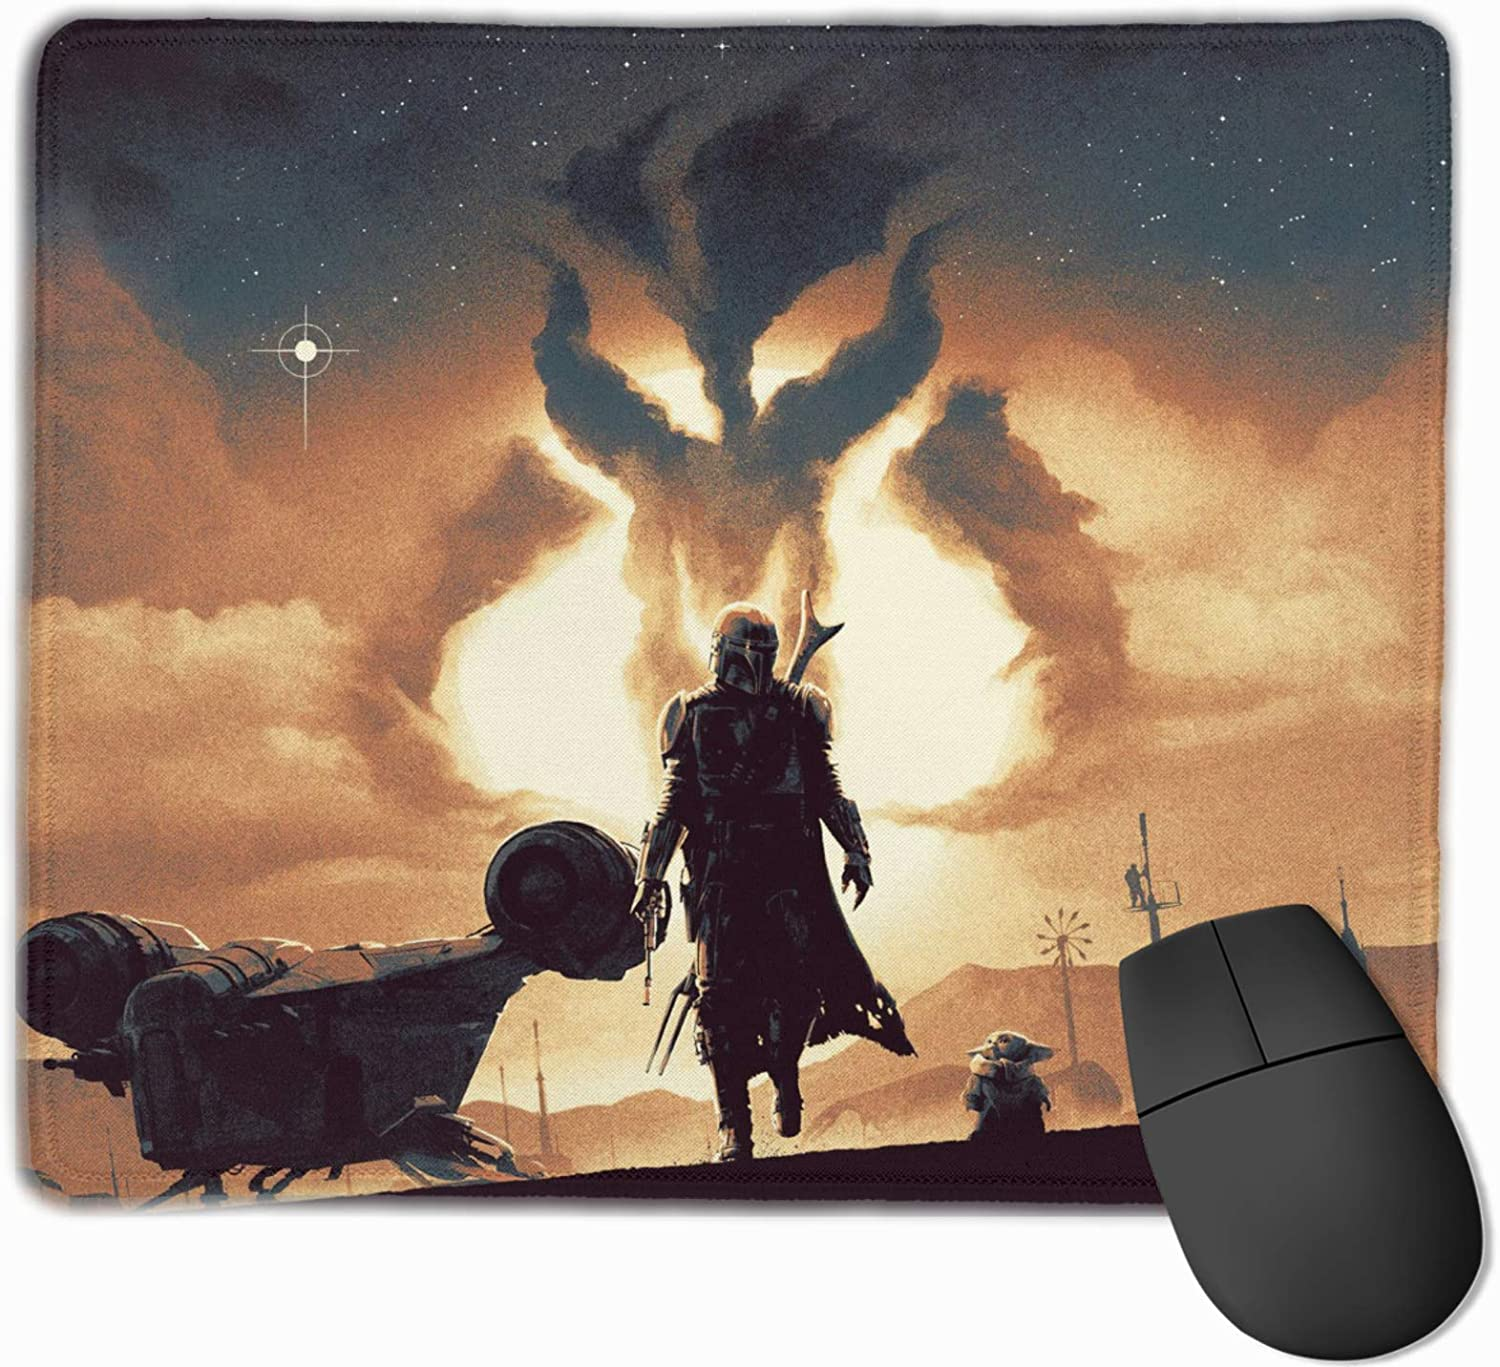 TILLIEE The Mandalorian Mouse Pad with Stitched Edge, Office & Gaming Non-Slip Rubber Base Mouse Mat for Laptop & Computer 12 X 9.8 in